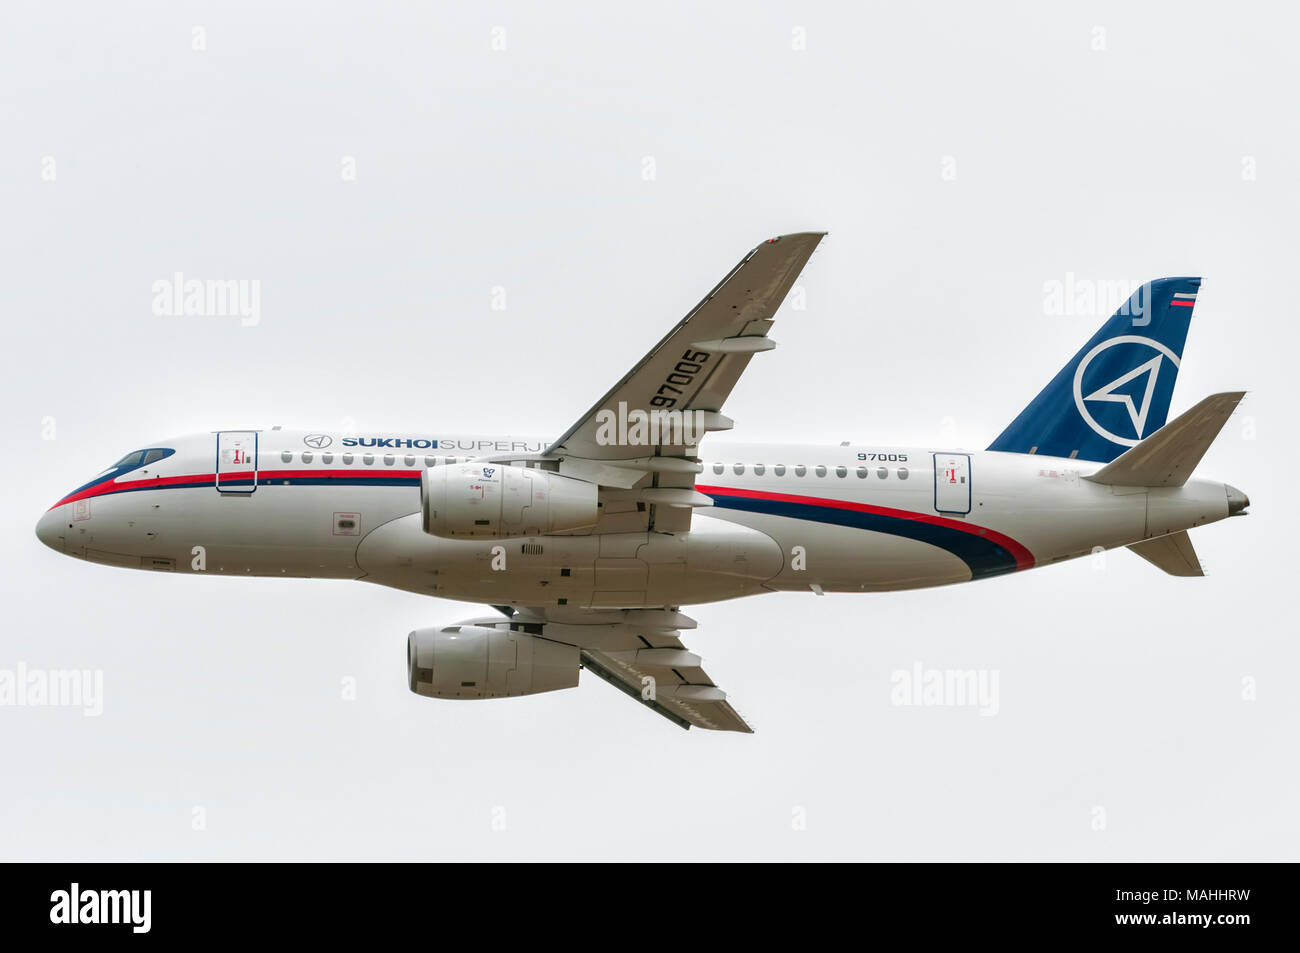 Sukhoi Superjet 100 - Stock Image